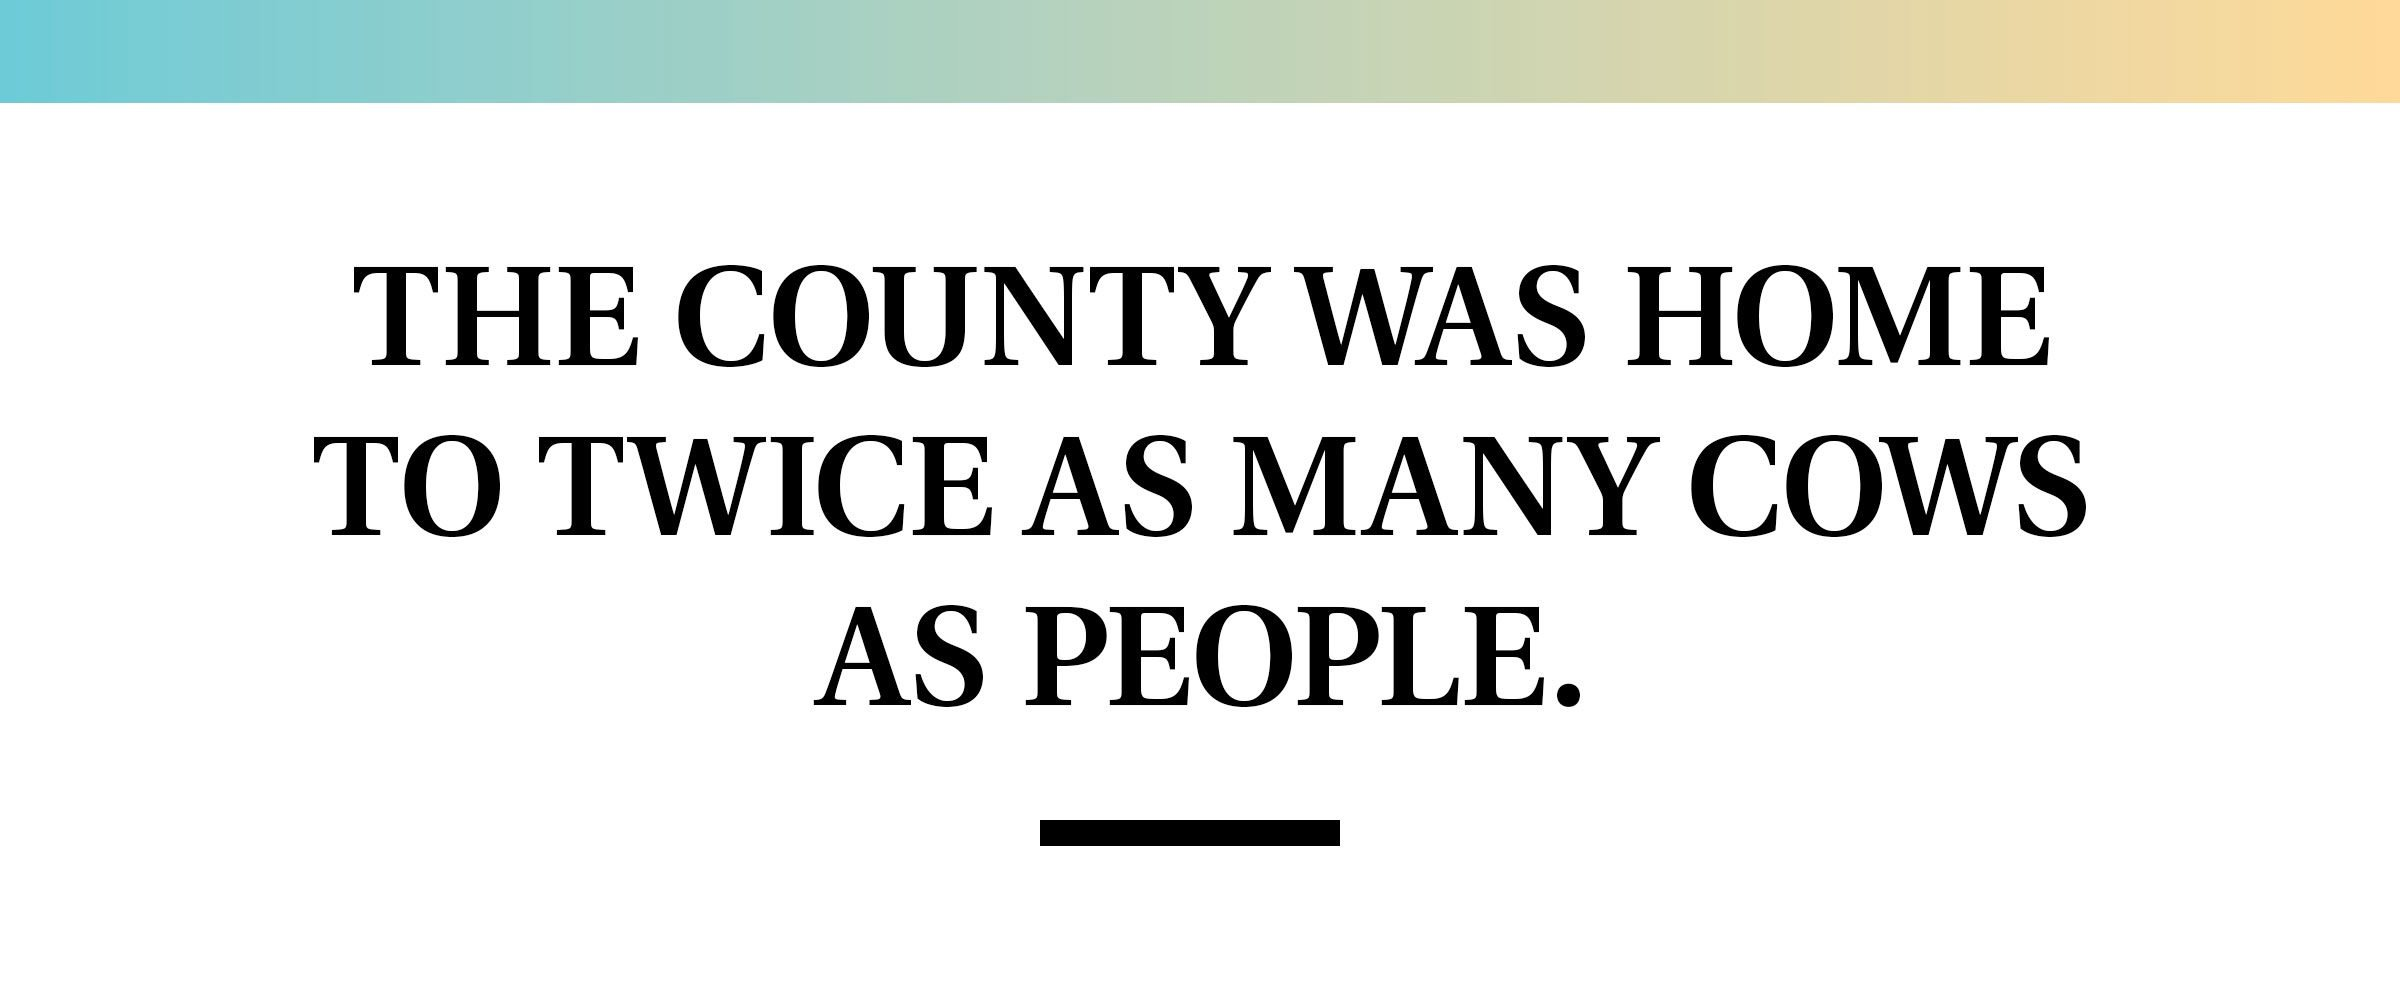 pull quote text. the county was home to twice as many cows as people.